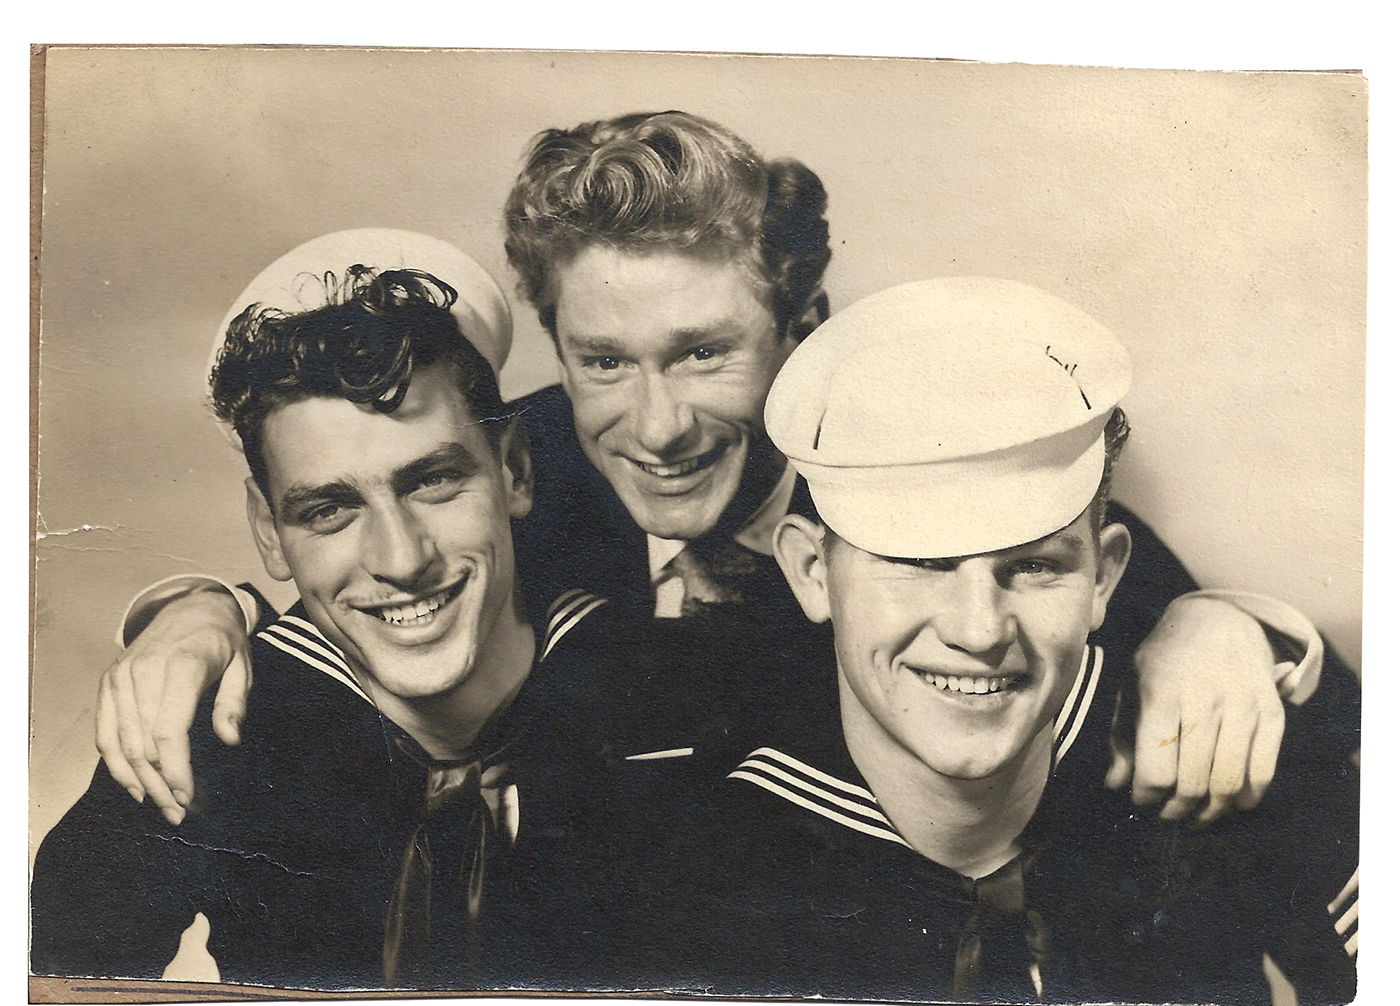 Henry Faulkner with two soldiers c. 1940s. Image courtesy of the Faulkner-Morgan Pagan Babies Archive.